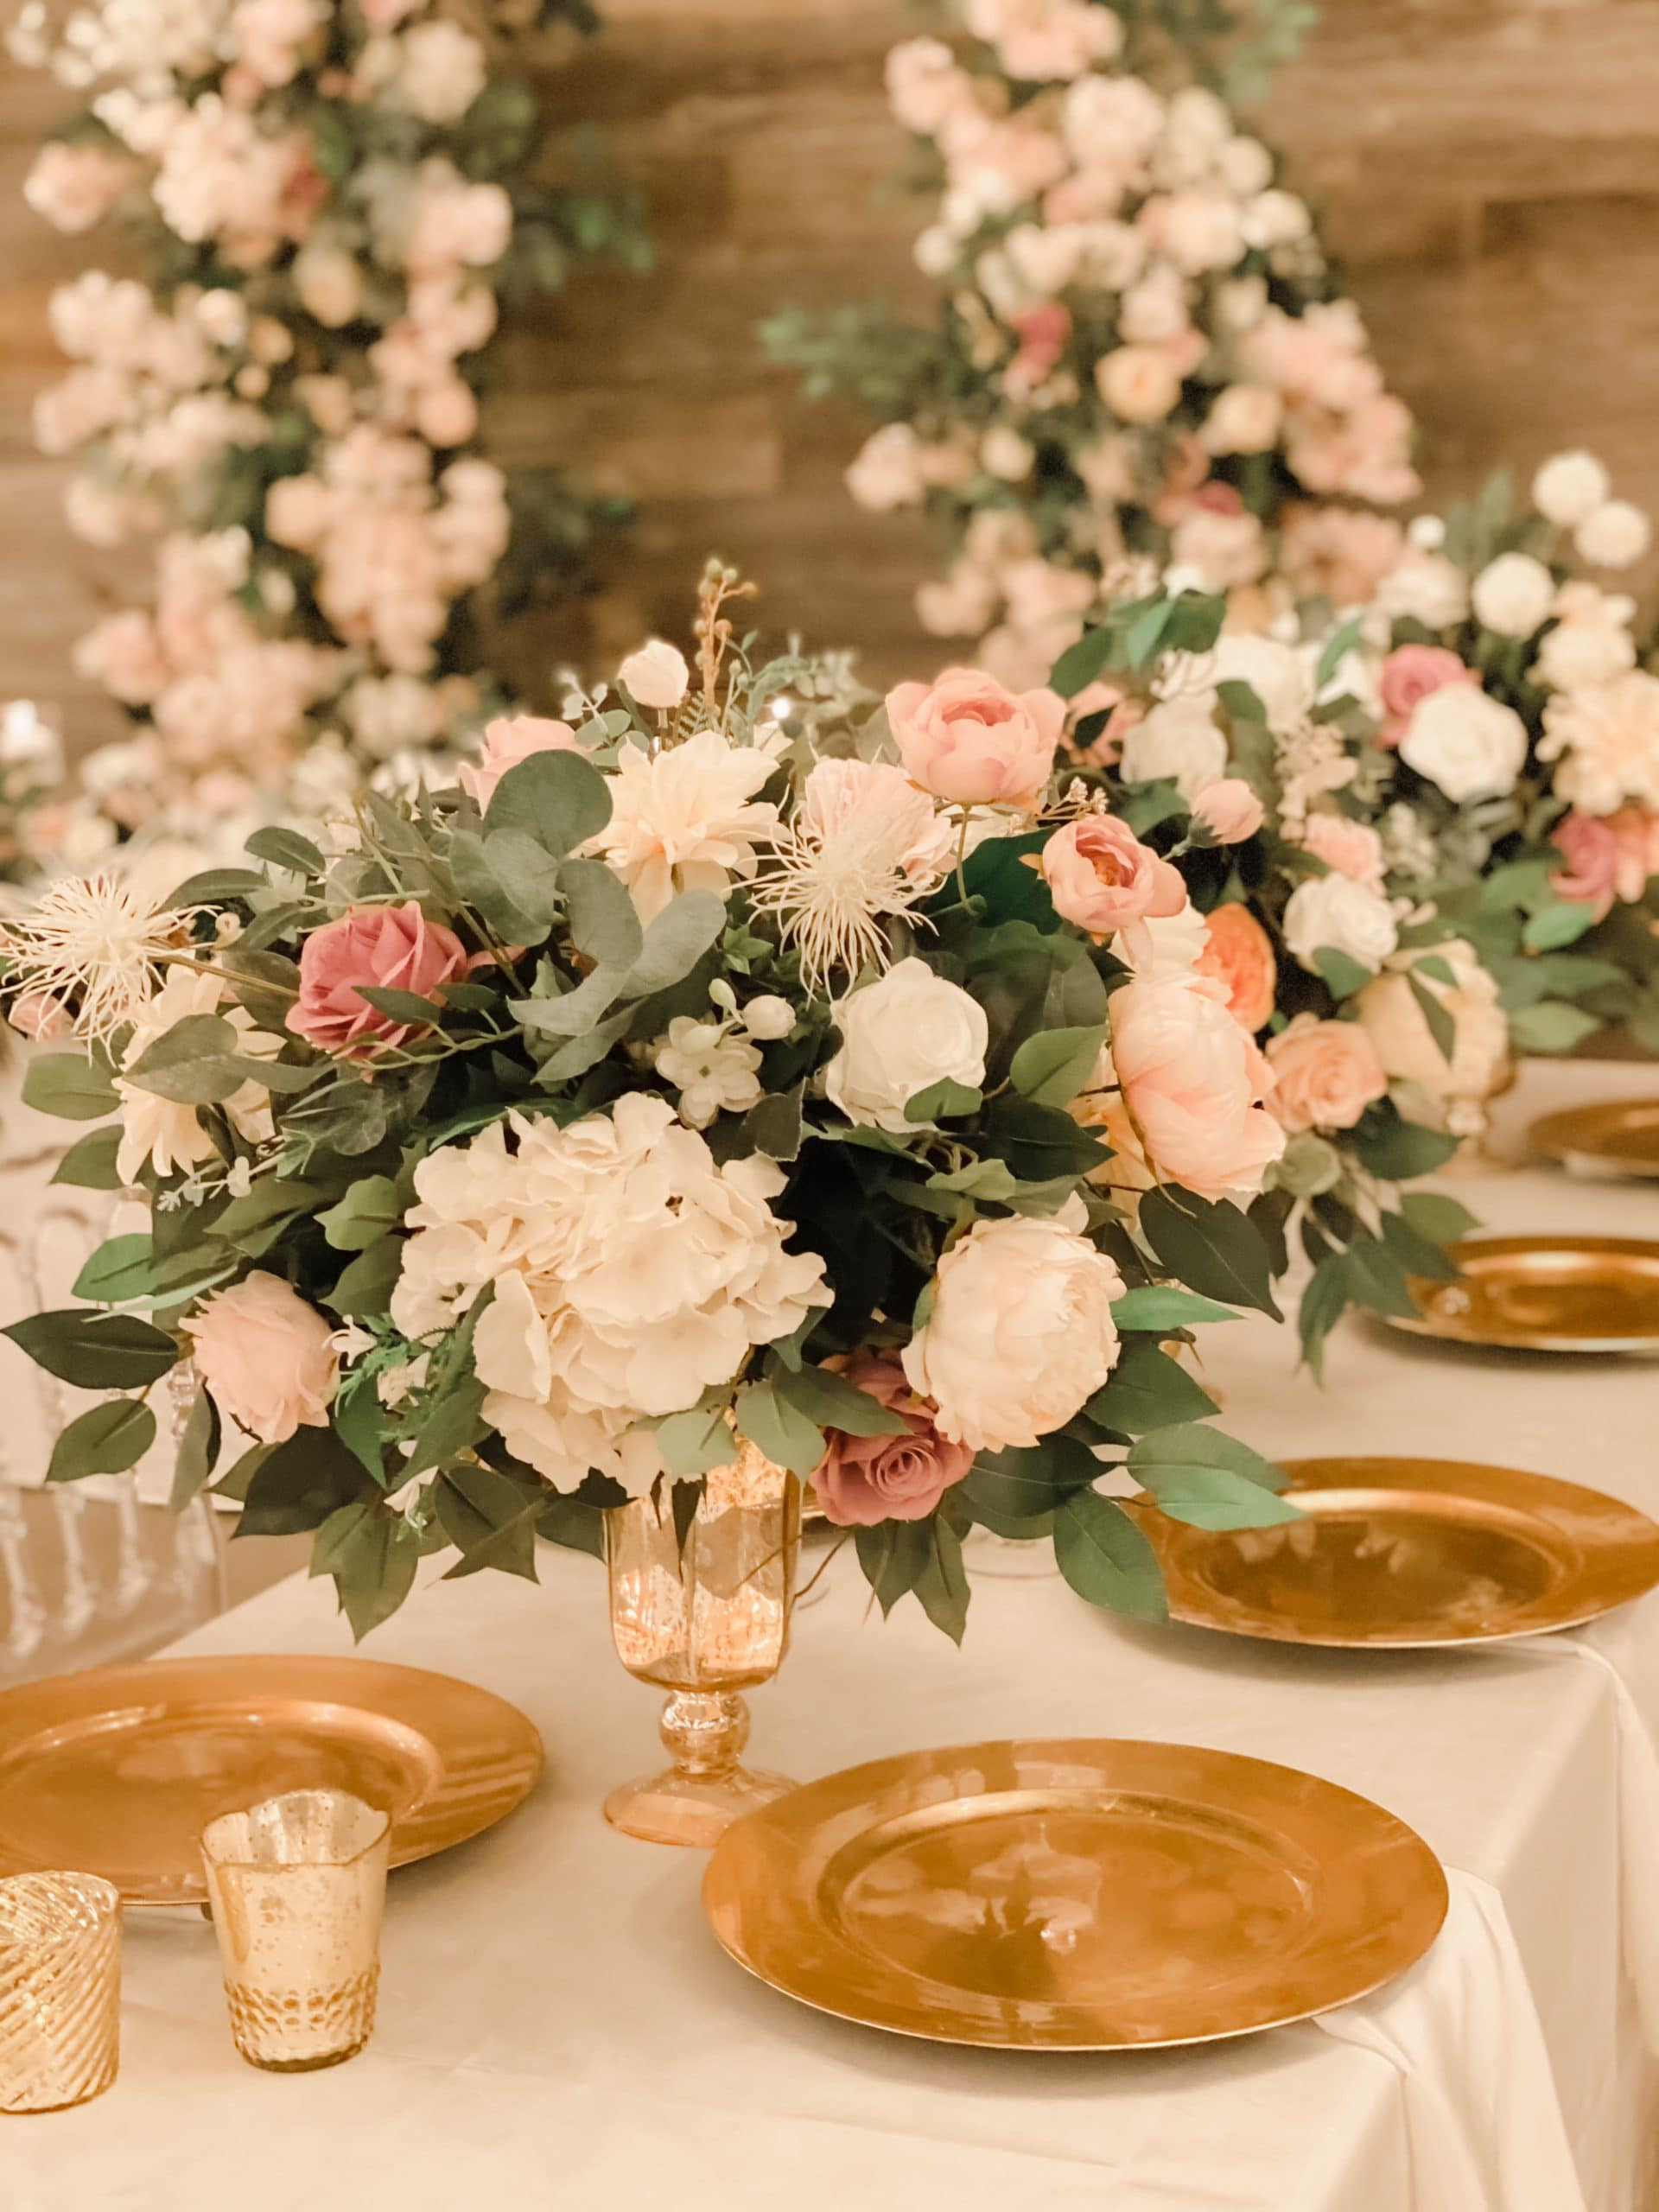 FloralBash, party rentals and floral services